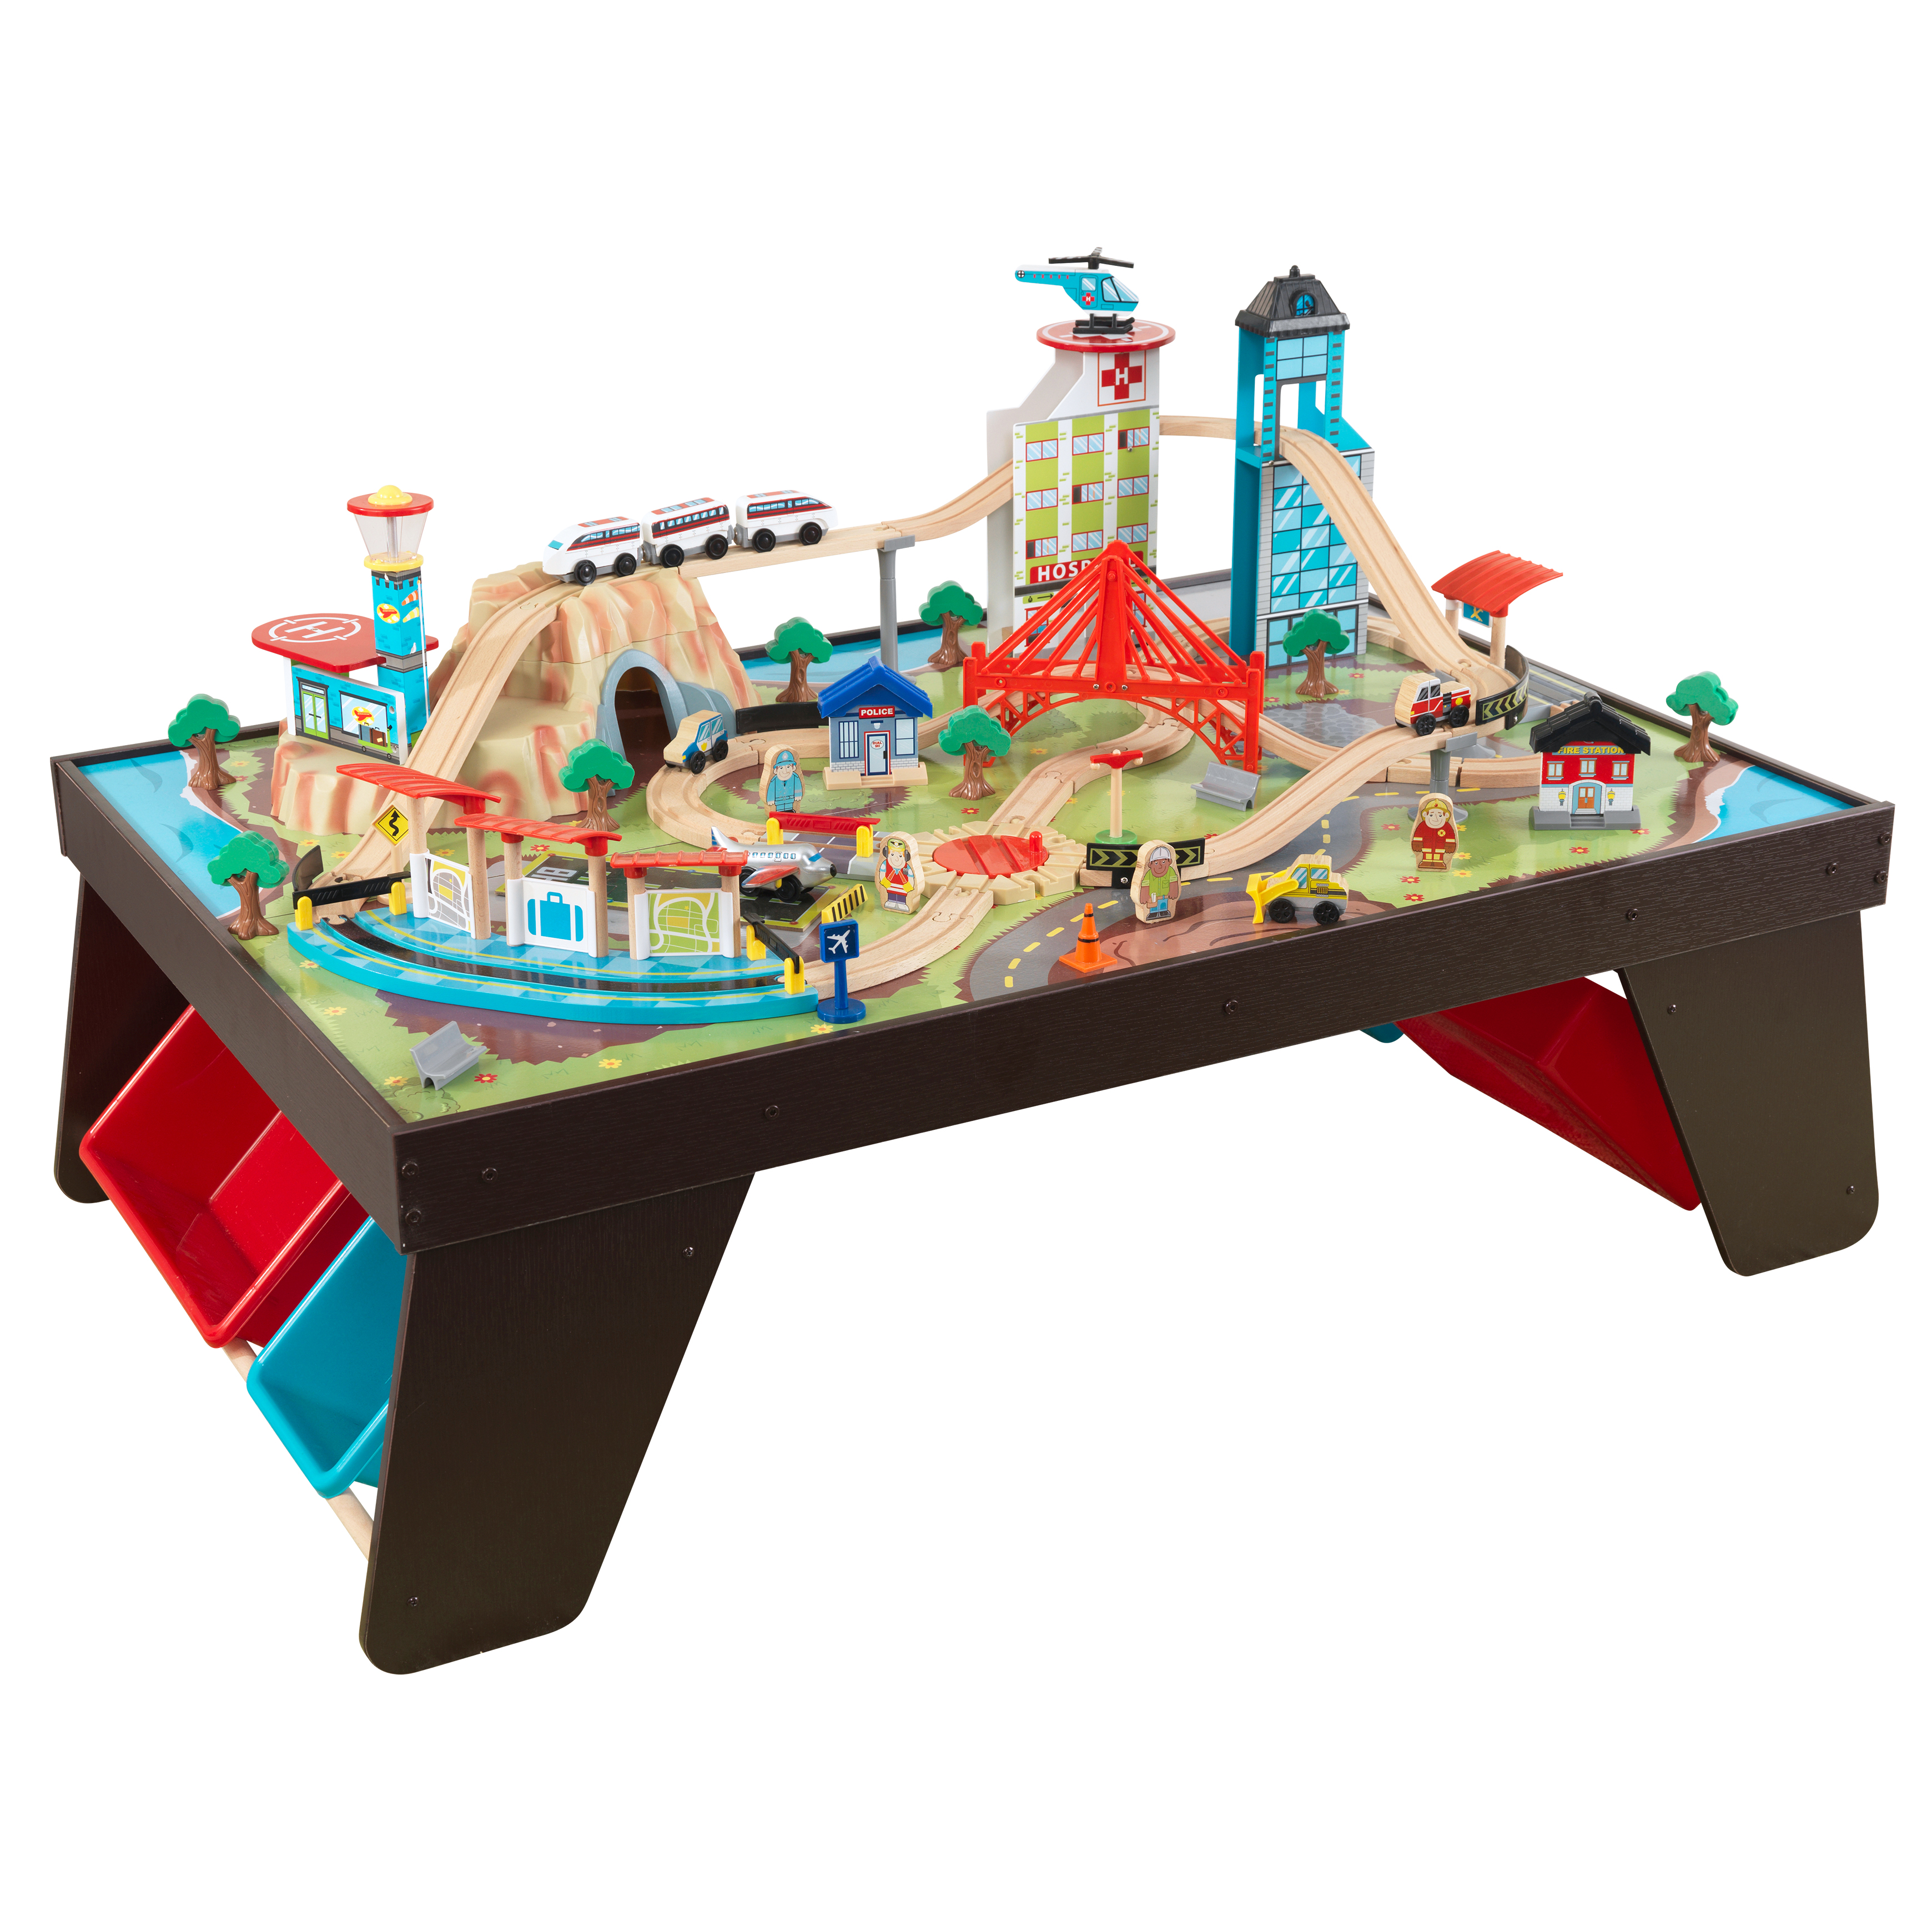 KidKraft Aero City Train Set & Table Espresso with 80+ accessories included by KidKraft, Inc.